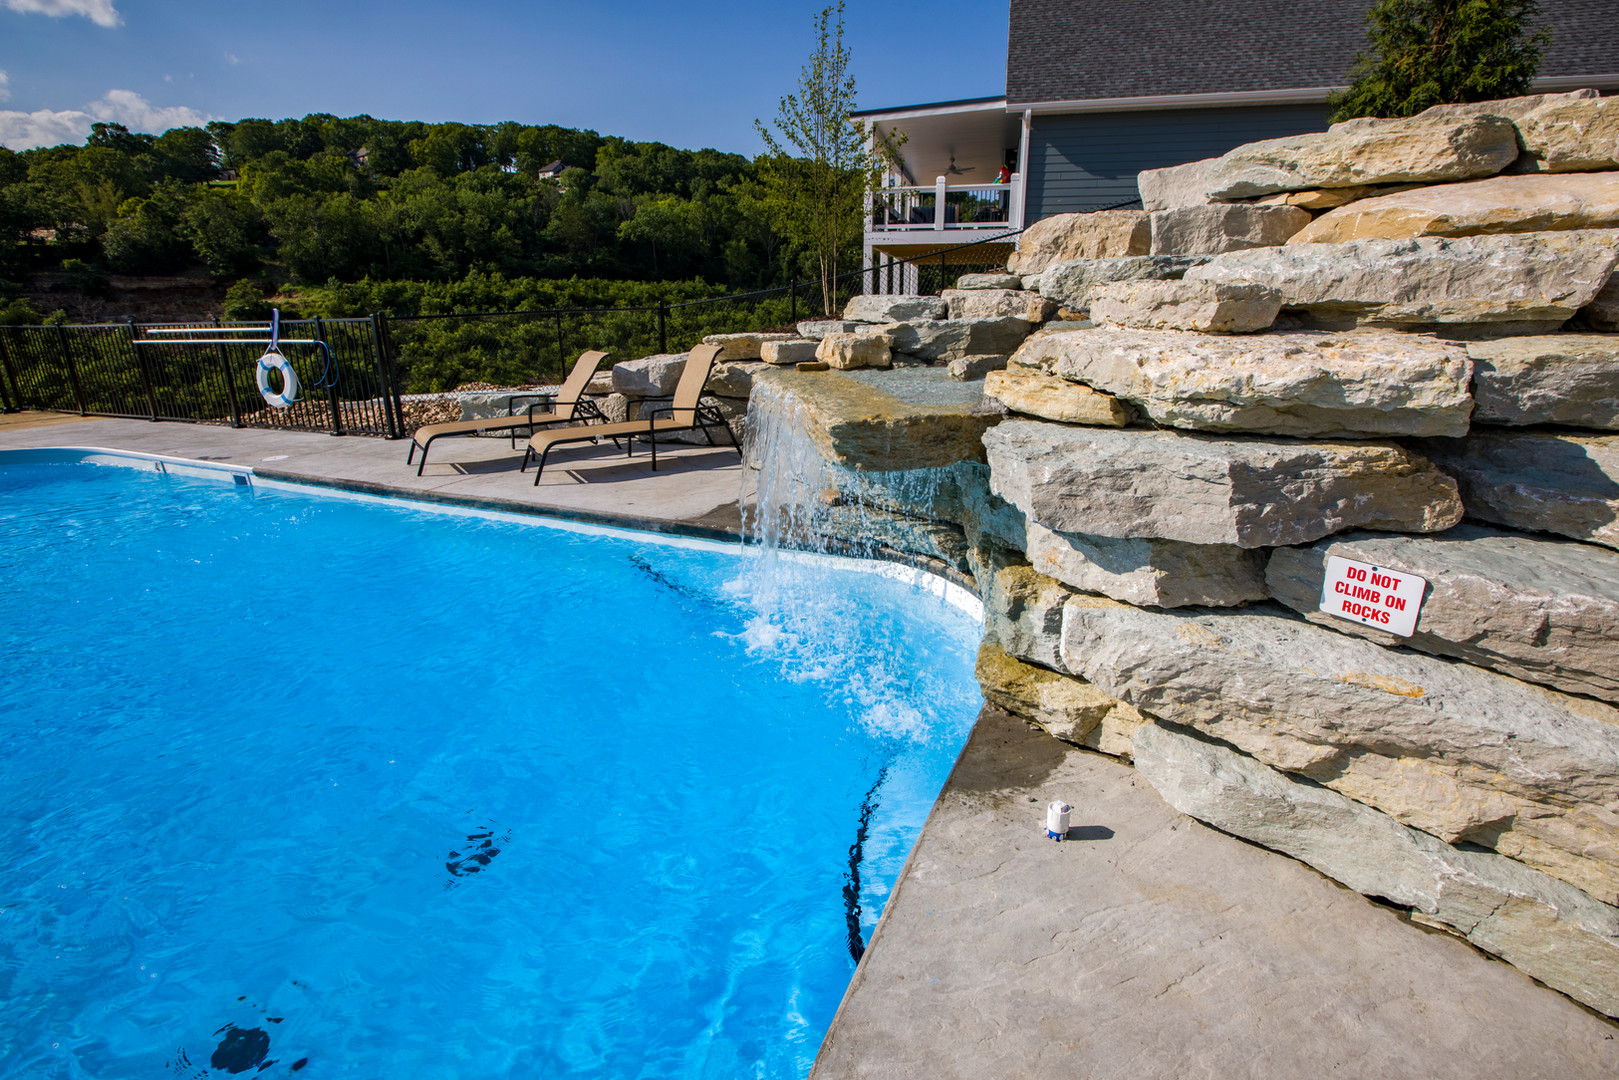 Chateau Cove - Beth's Breakaways, Branson